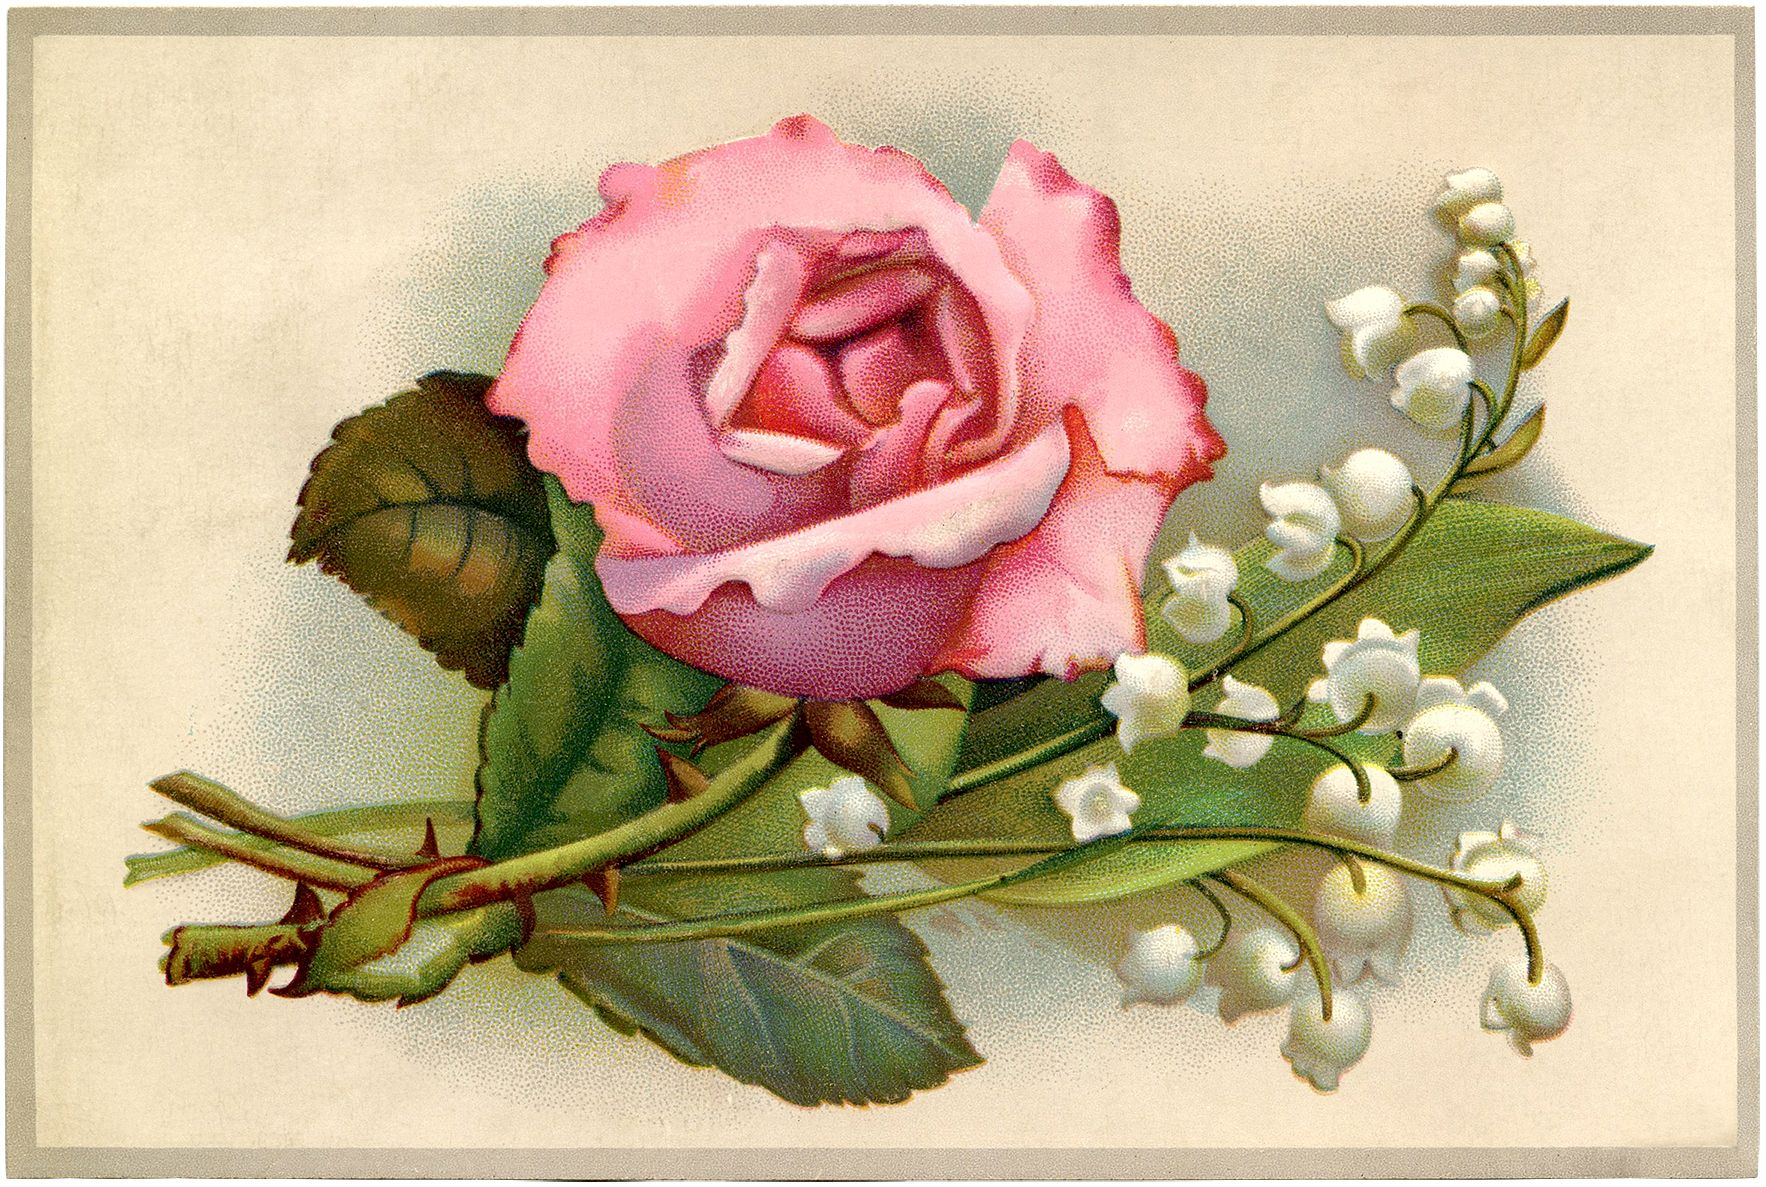 Roses and lilys clipart image freeuse library Vintage Roses and Lily of the Valley Image | flowers ... image freeuse library